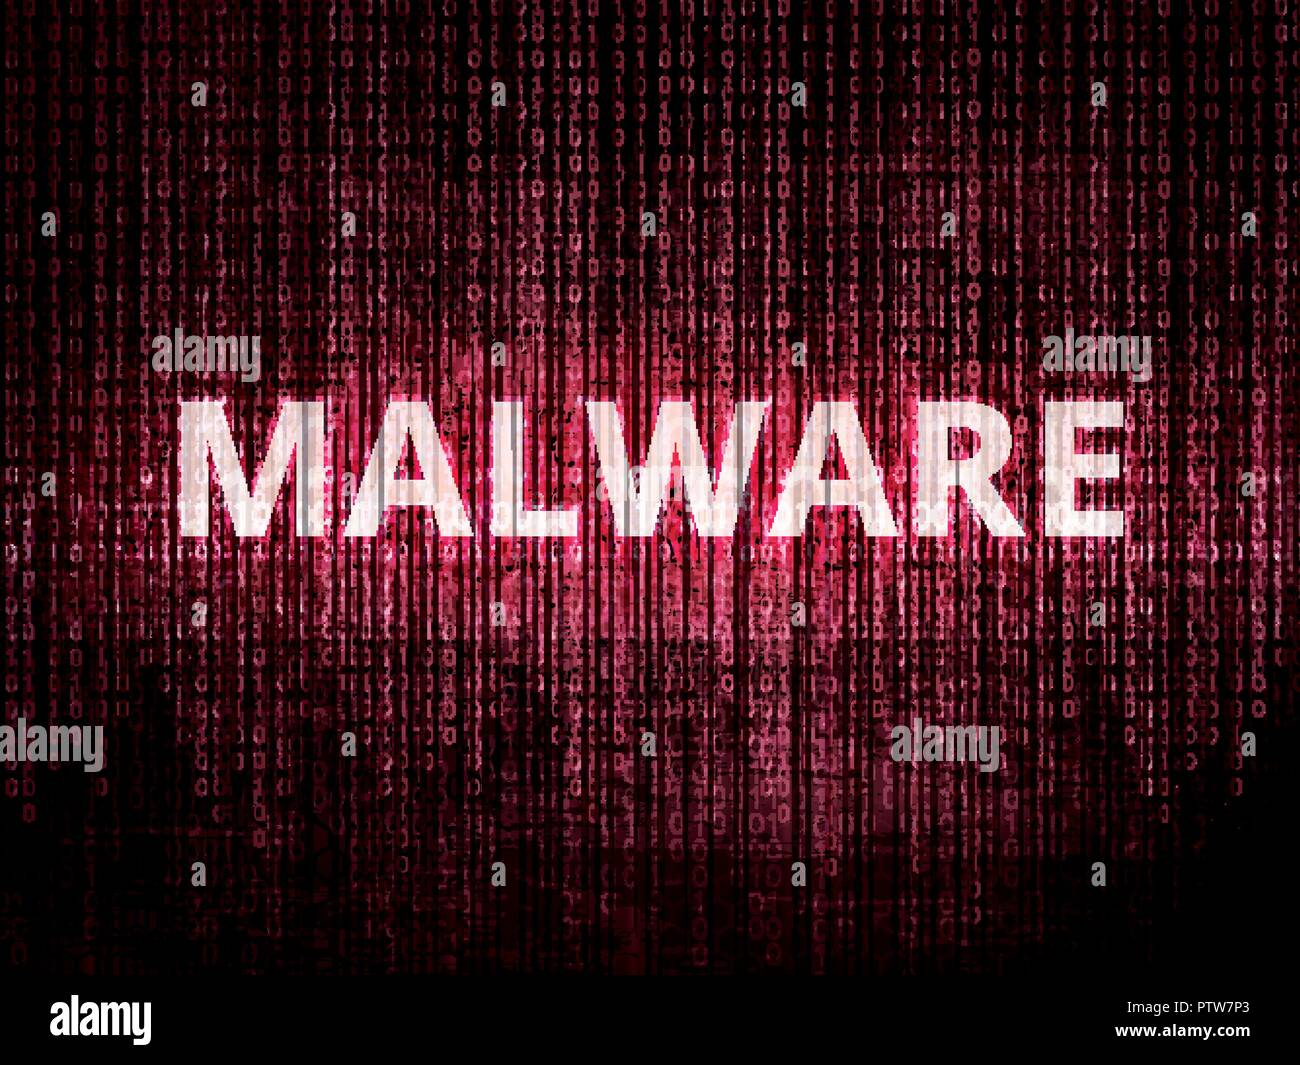 Text malware on background with binary encoding in red.  Concept of invasion of privacy, hacker attack, computer attack by virus, ransomware, malware  - Stock Vector